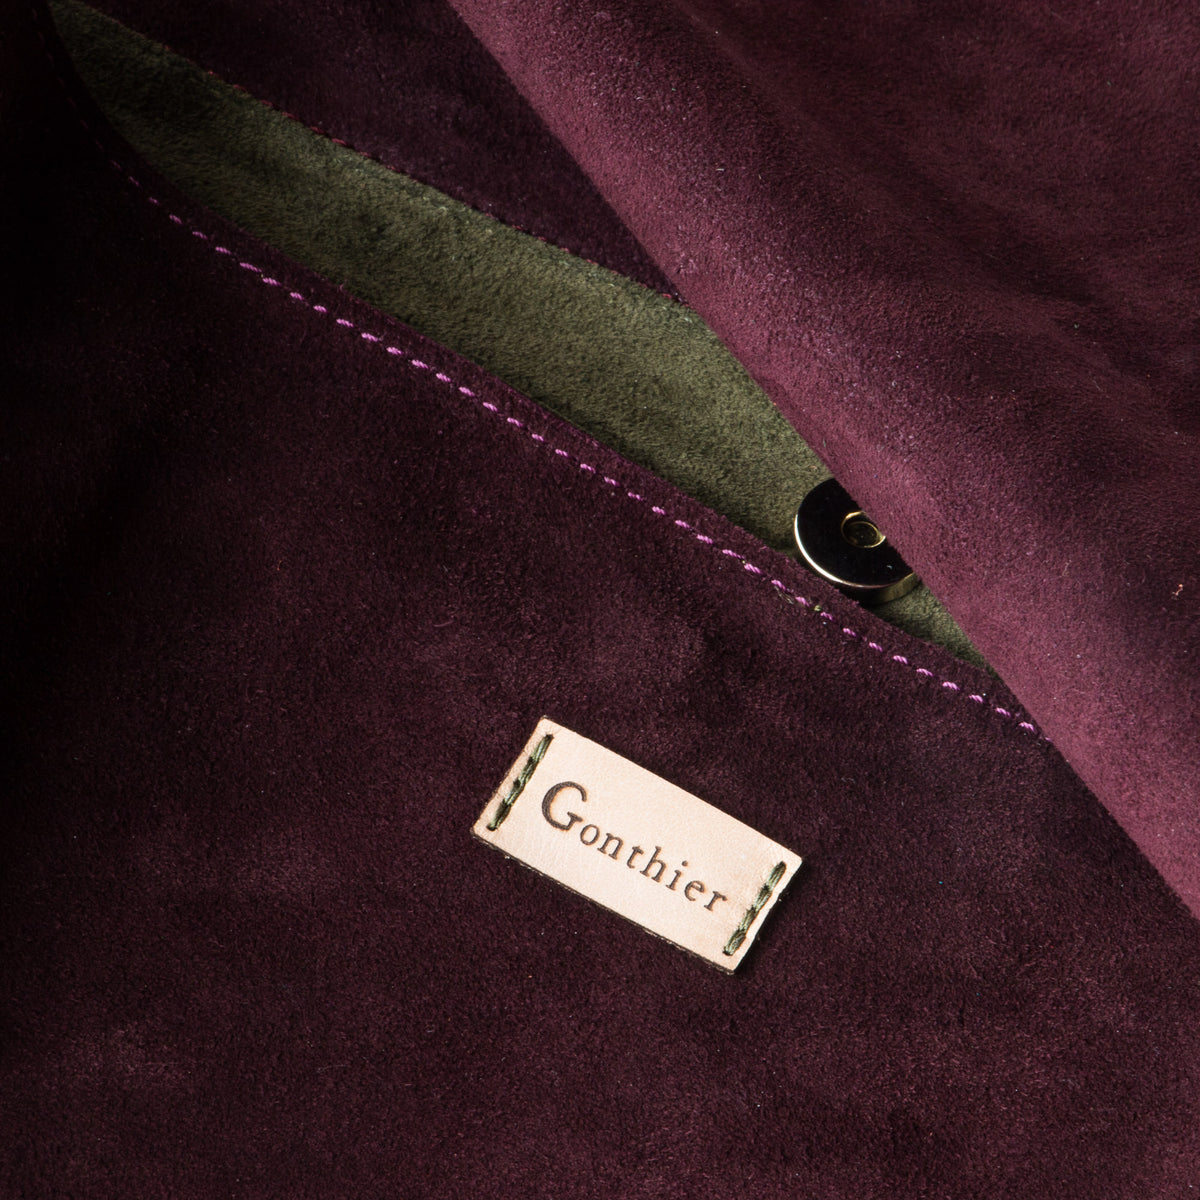 Detail - Bordeaux & Khaki - Handmade Flap Purse in Calf Suede & Pork Suede Lining - Sold by Chic & Basta